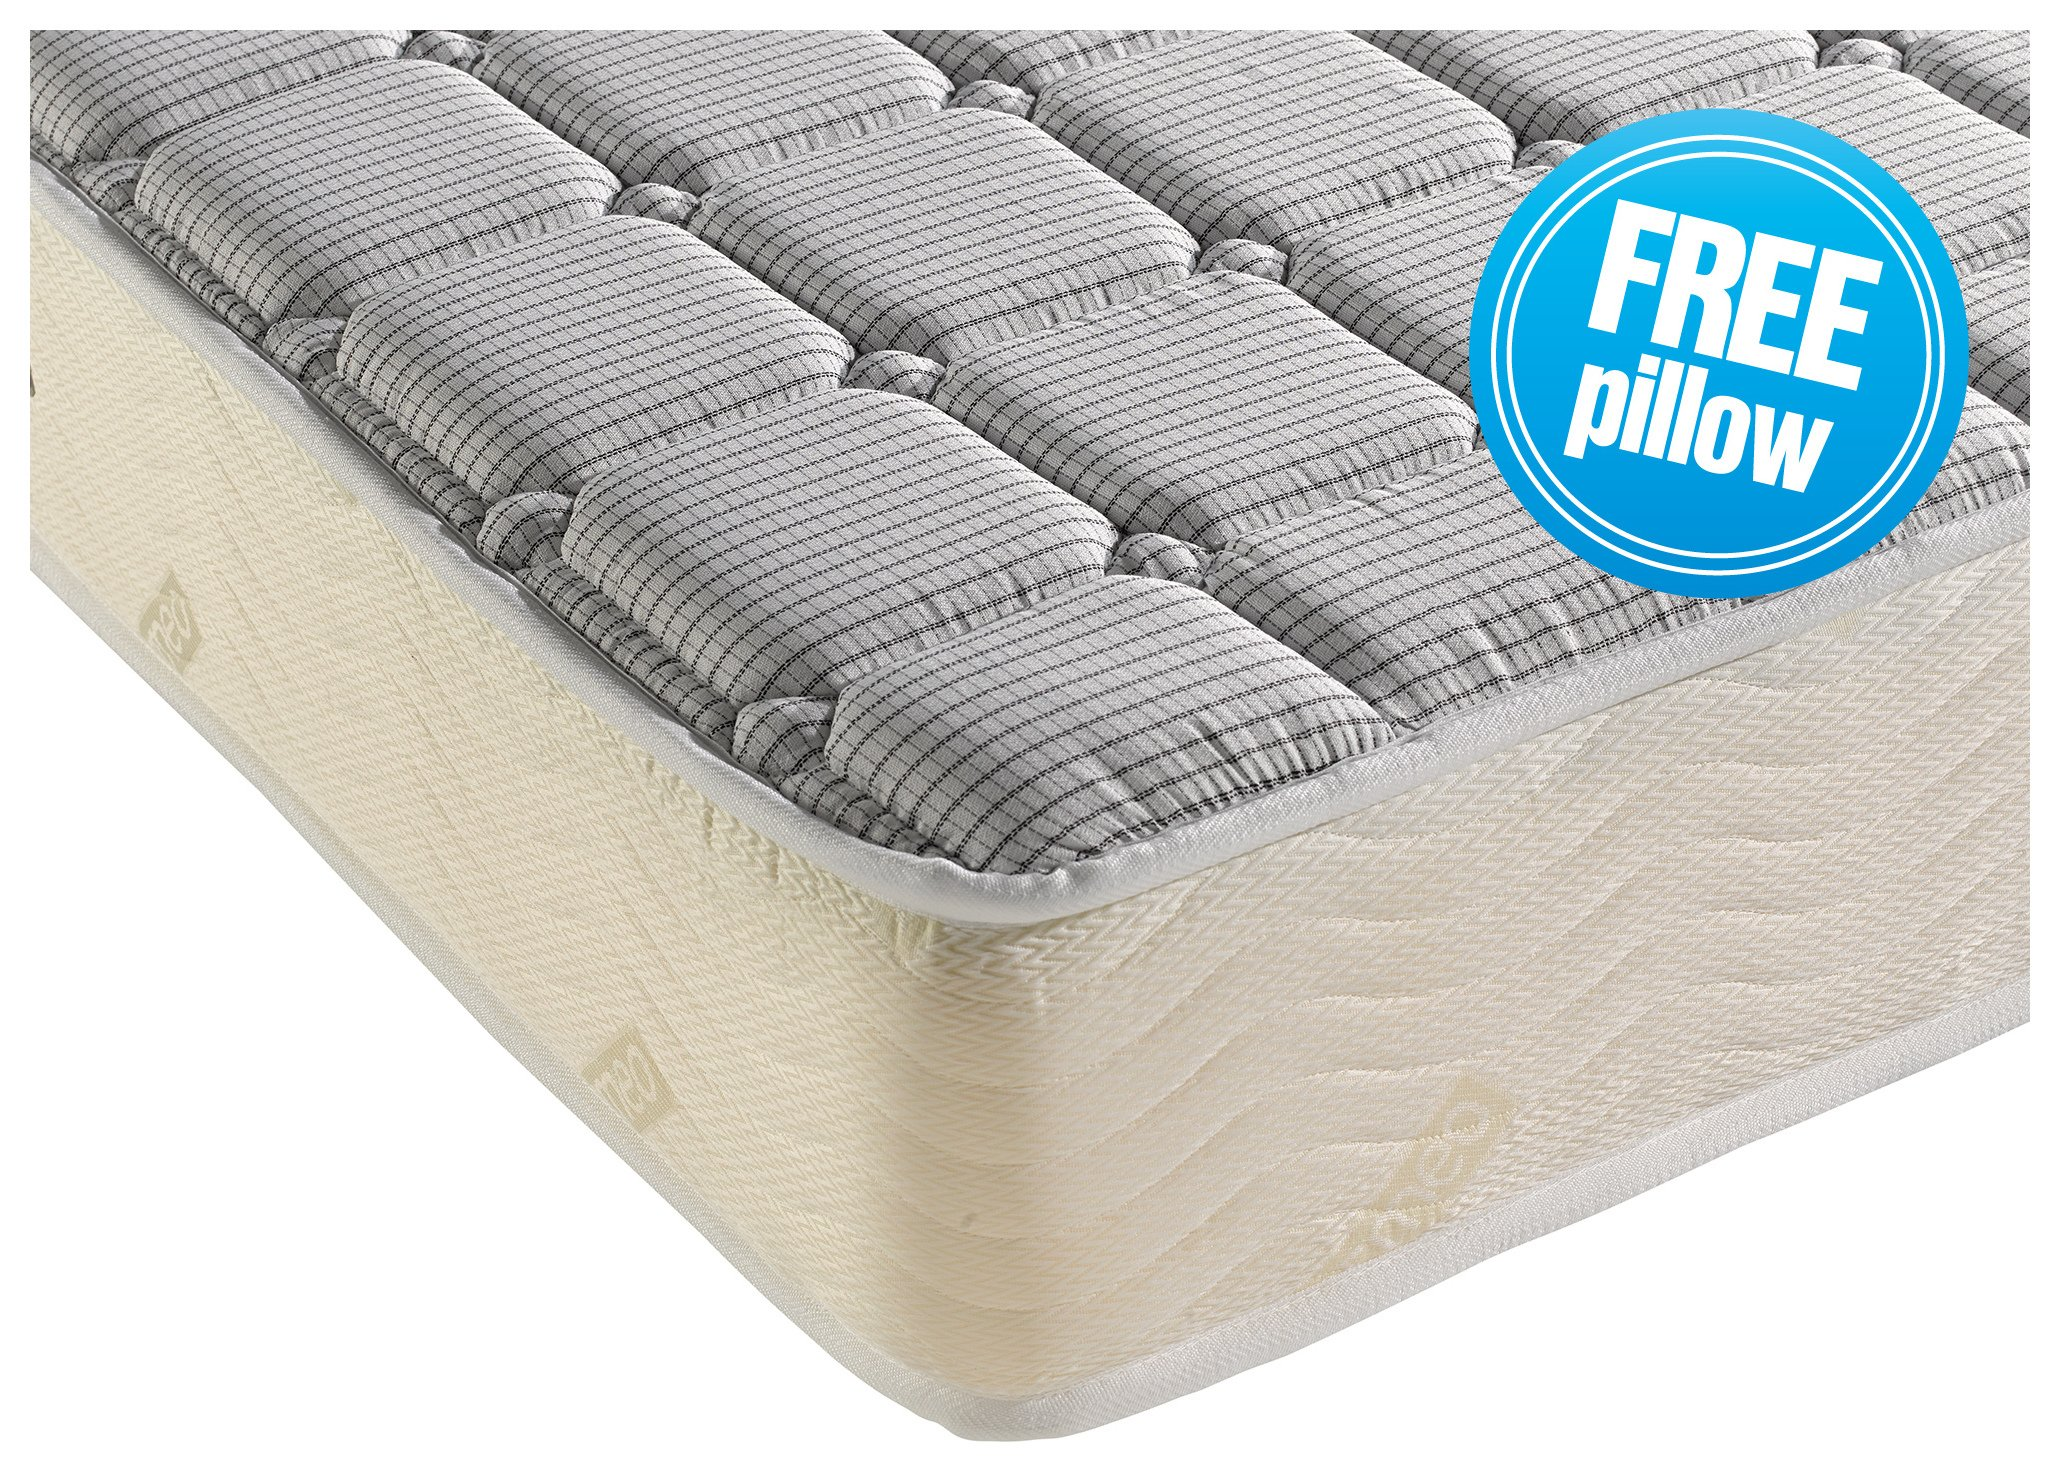 Dormeo Deluxe Memory Foam Double Mattress